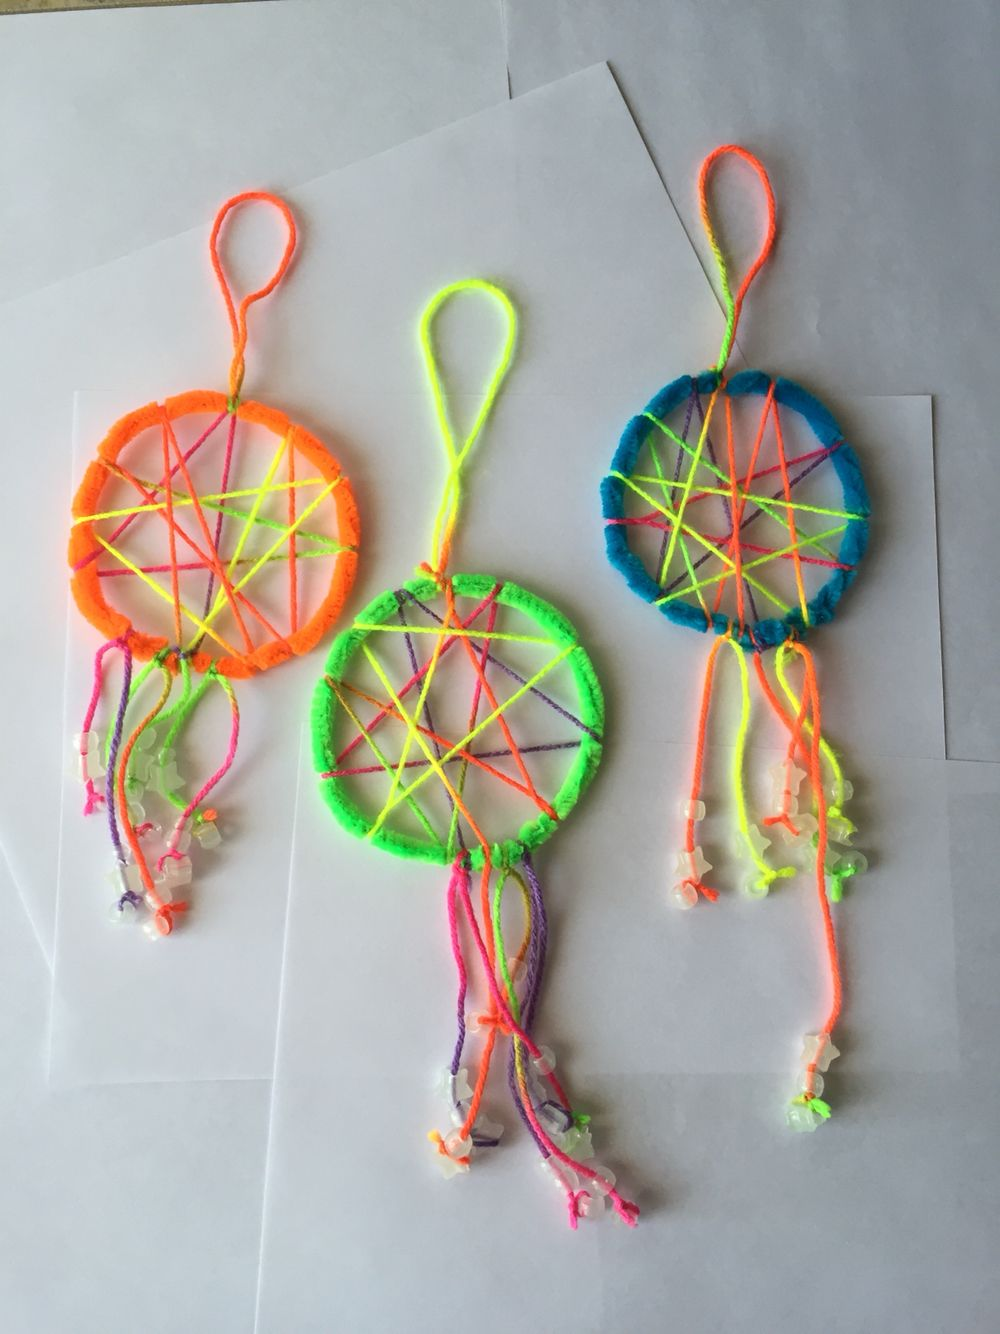 Pipe cleaners for crafts - A